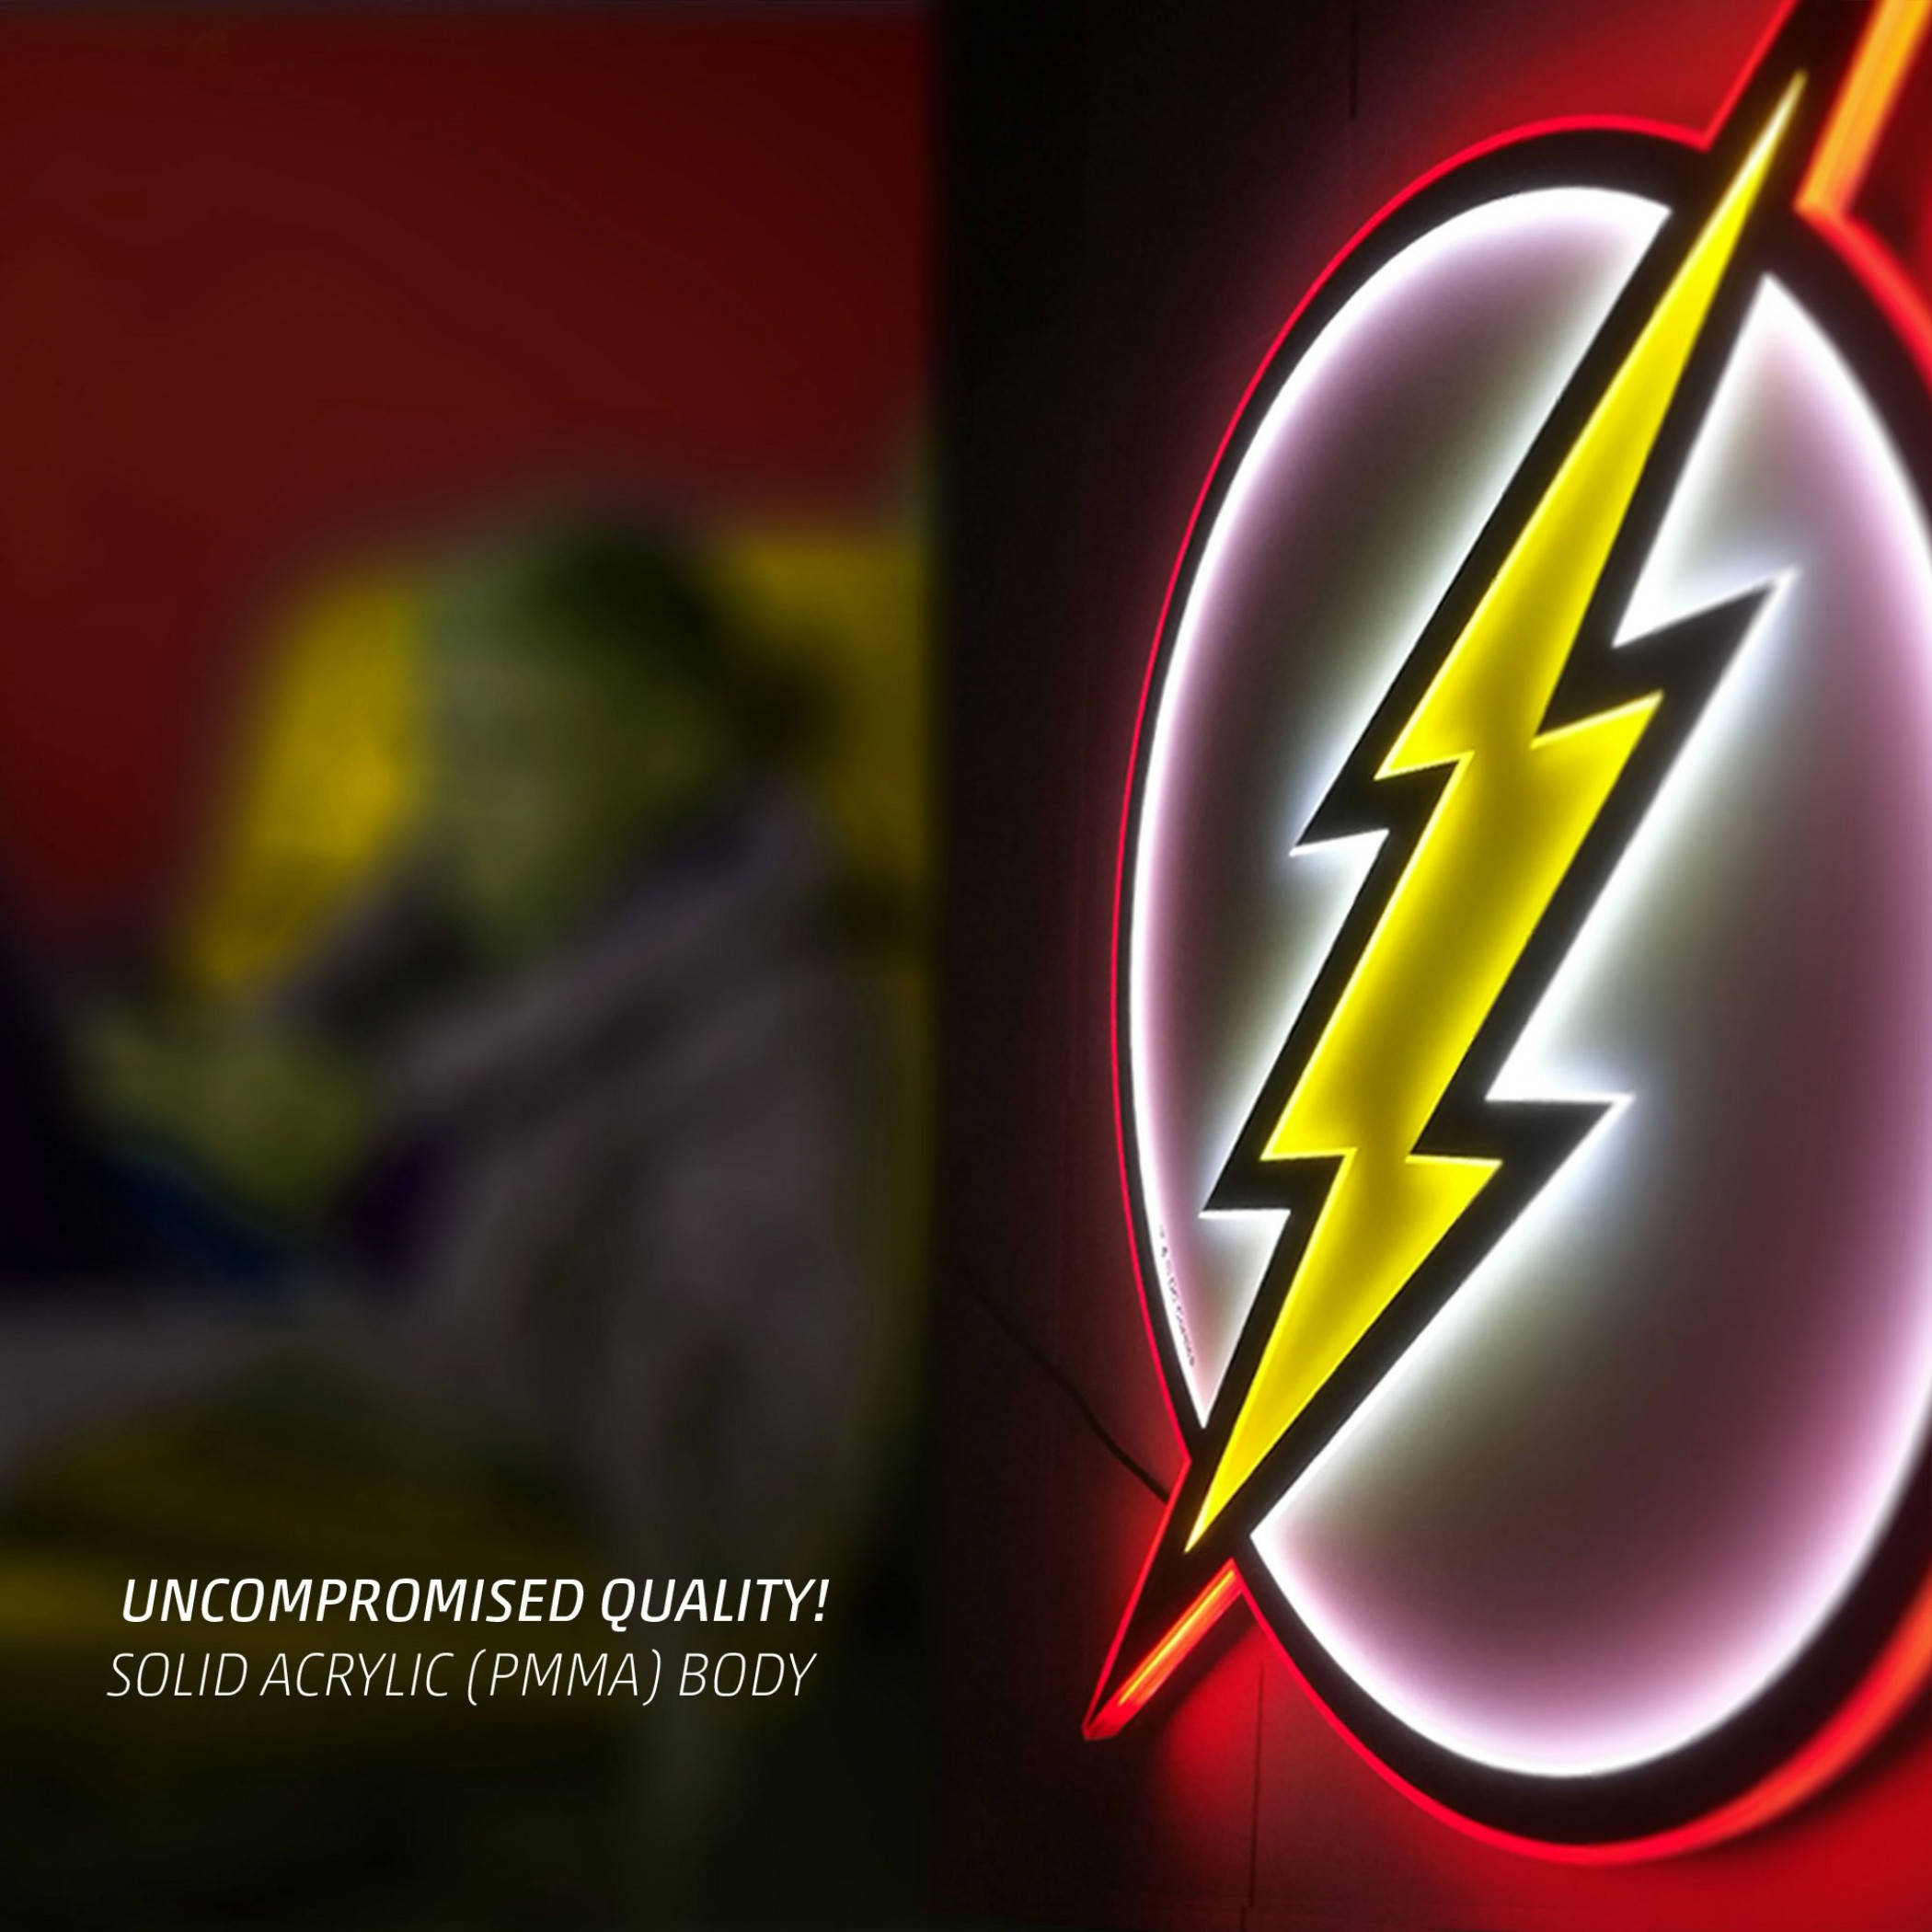 Flash Symbol Illuminated Table Lamp Or Mountable Wall Art With Dimmer